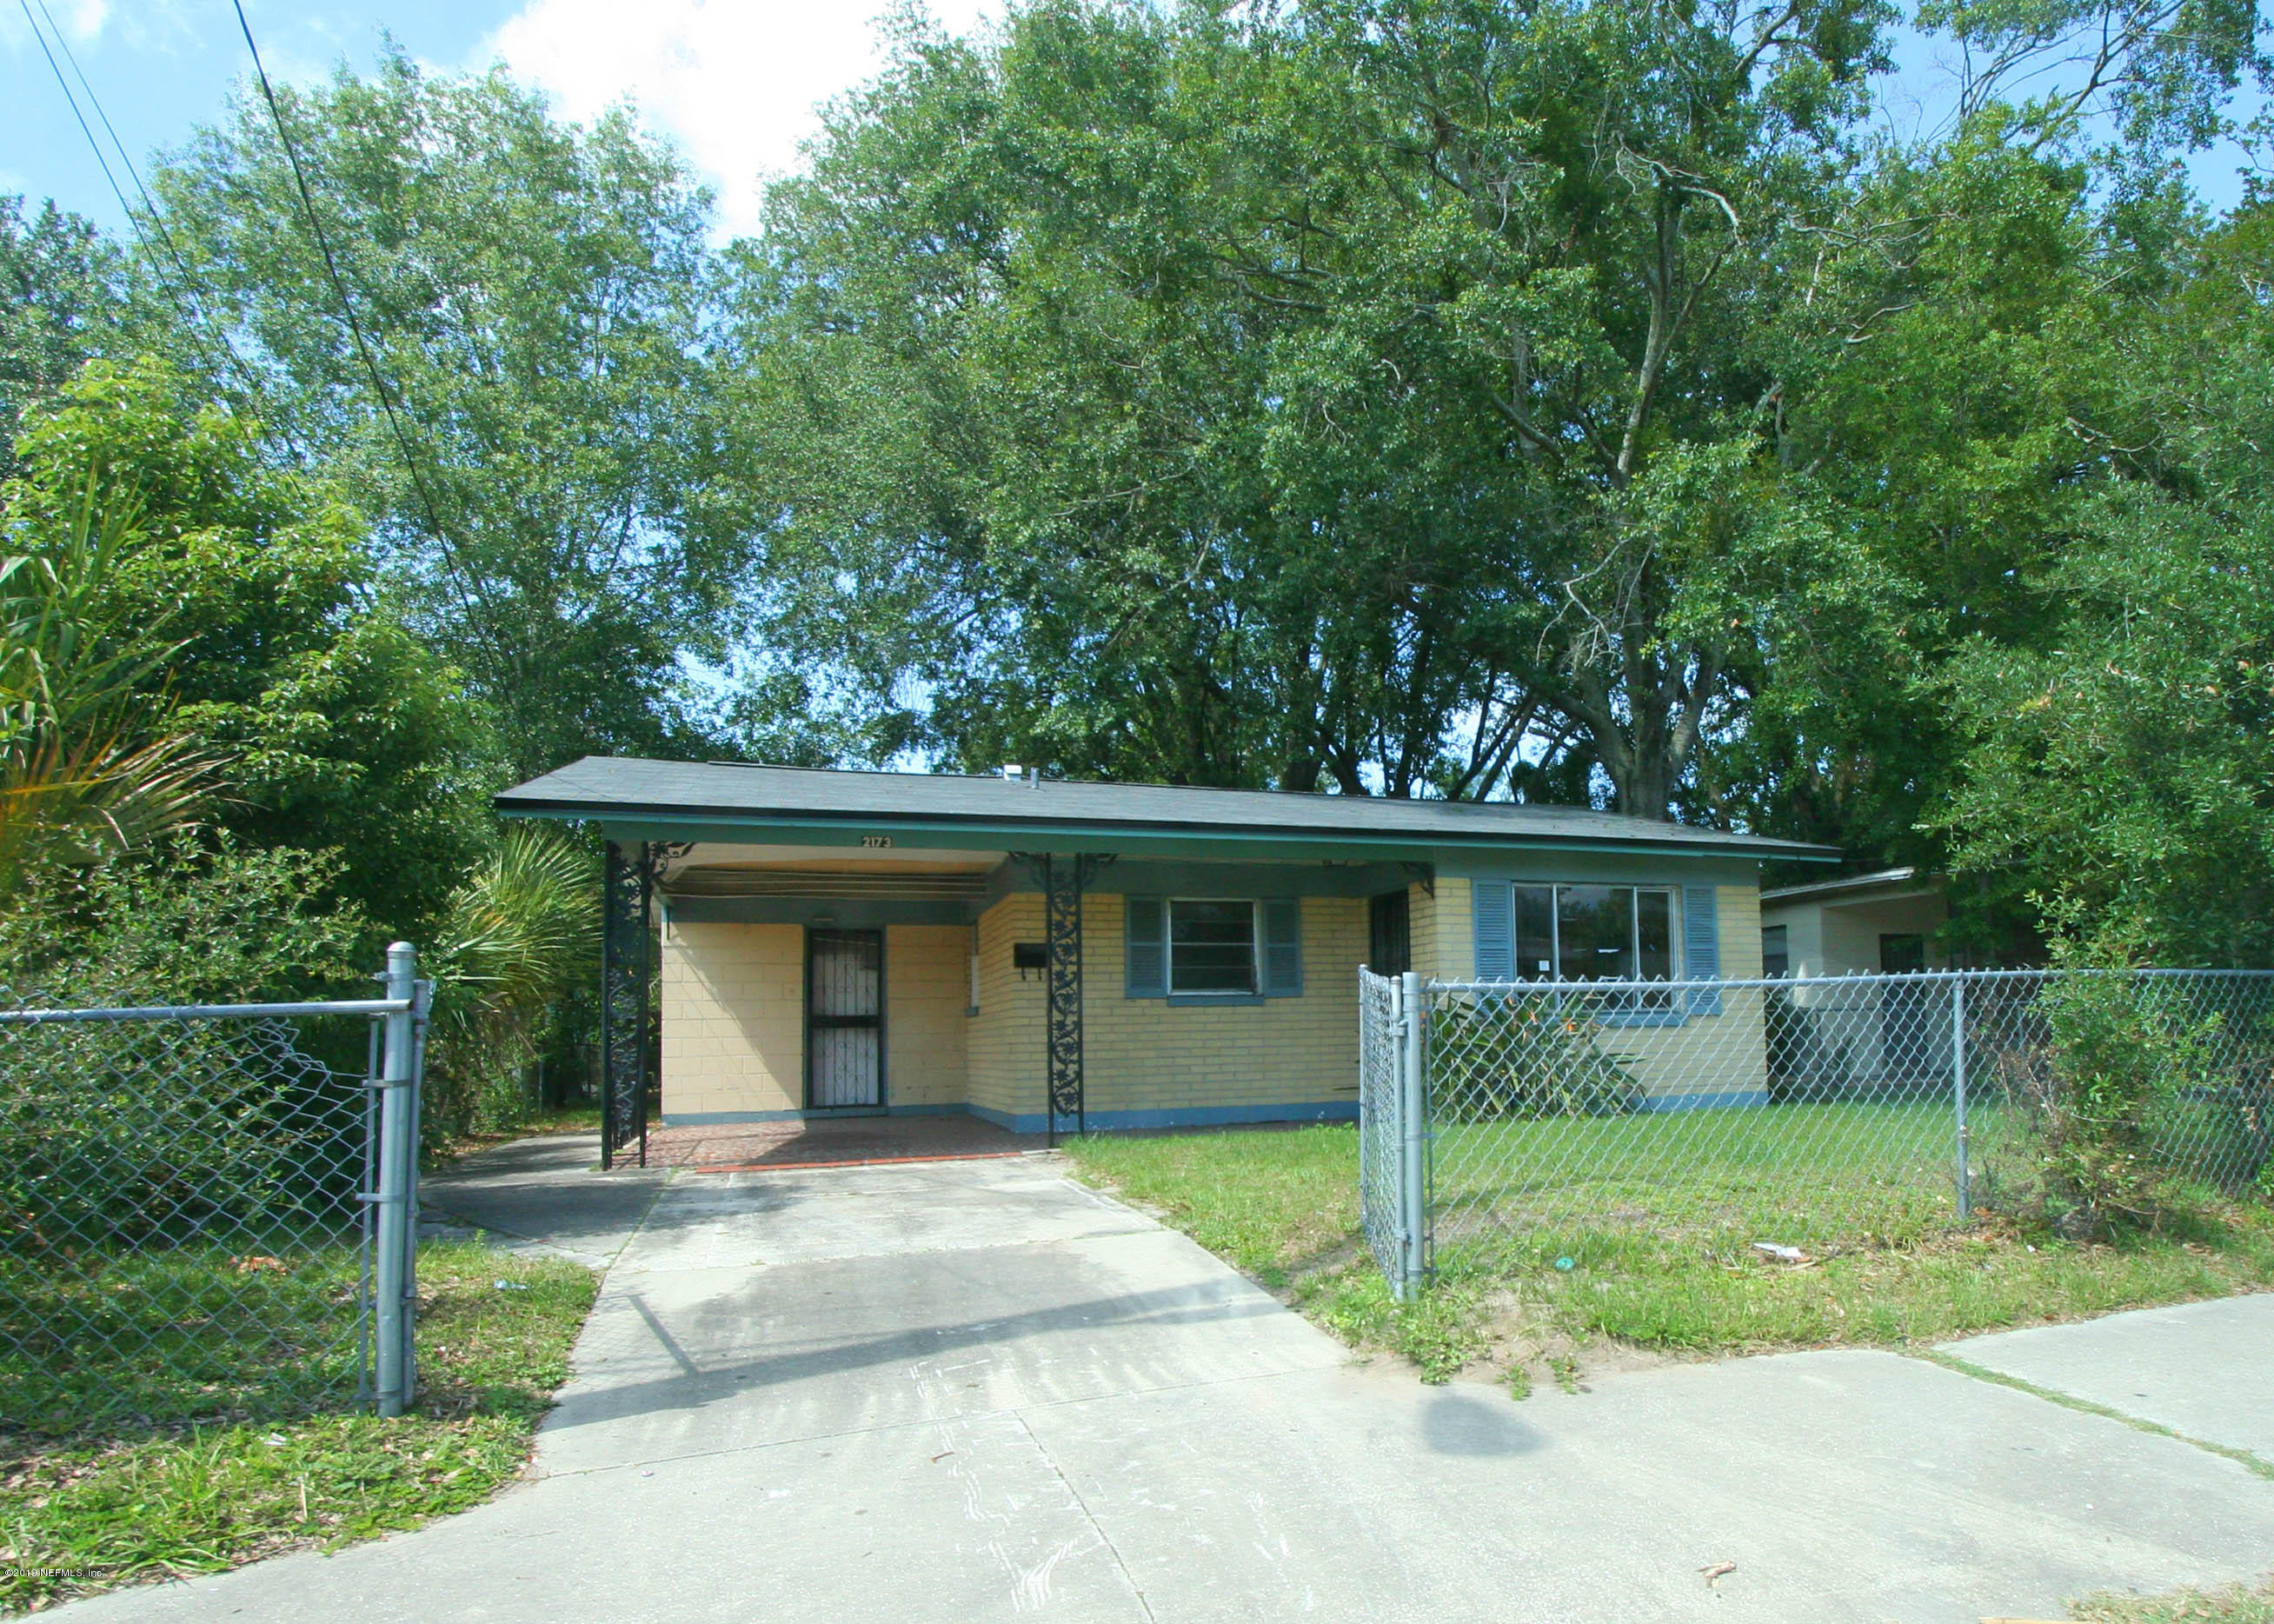 2173 13TH, JACKSONVILLE, FLORIDA 32209, 3 Bedrooms Bedrooms, ,1 BathroomBathrooms,Residential - single family,For sale,13TH,995981